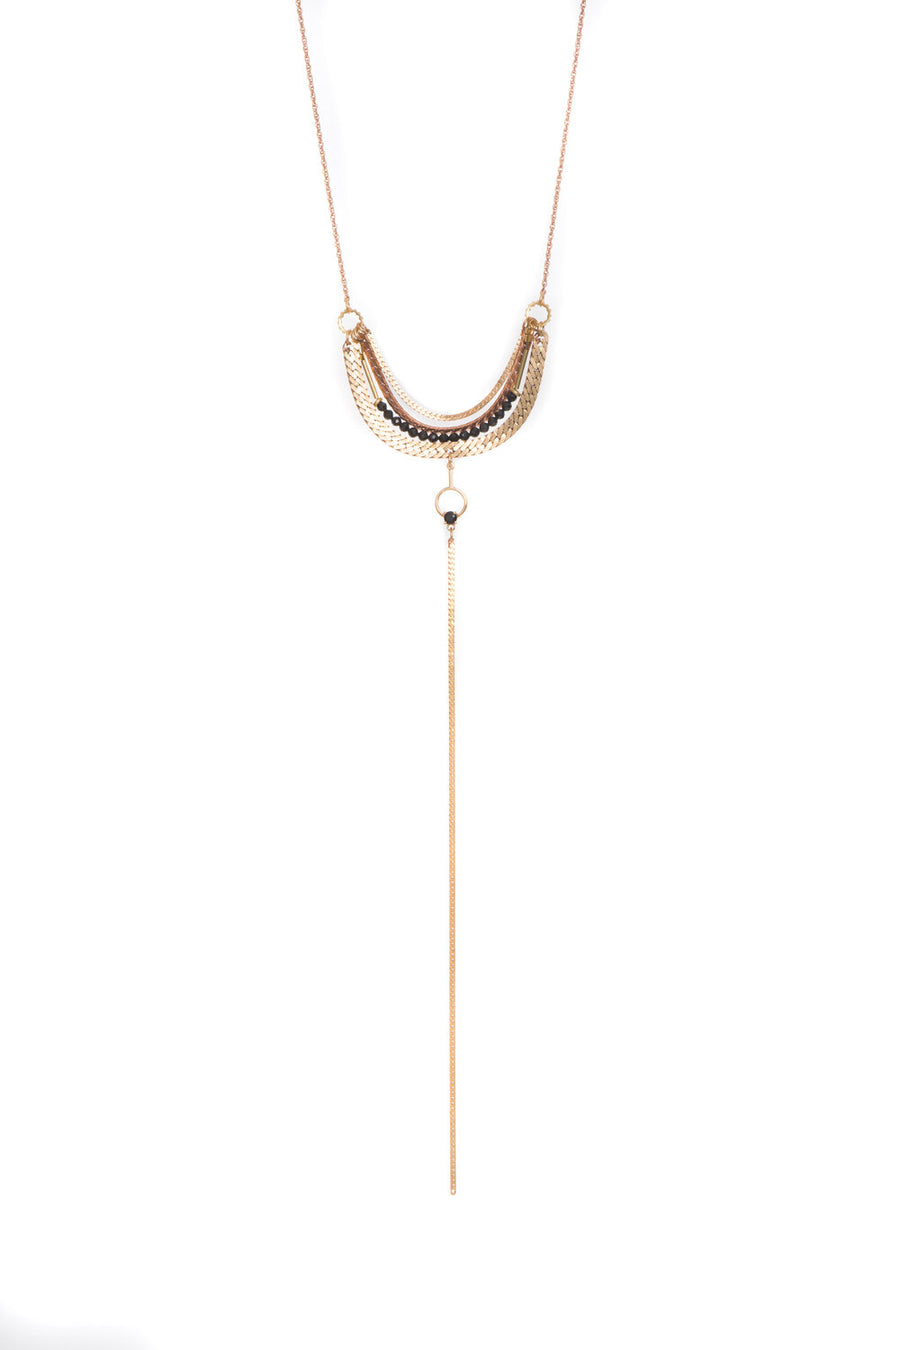 Hailey Gerrits - Ellipse Necklace